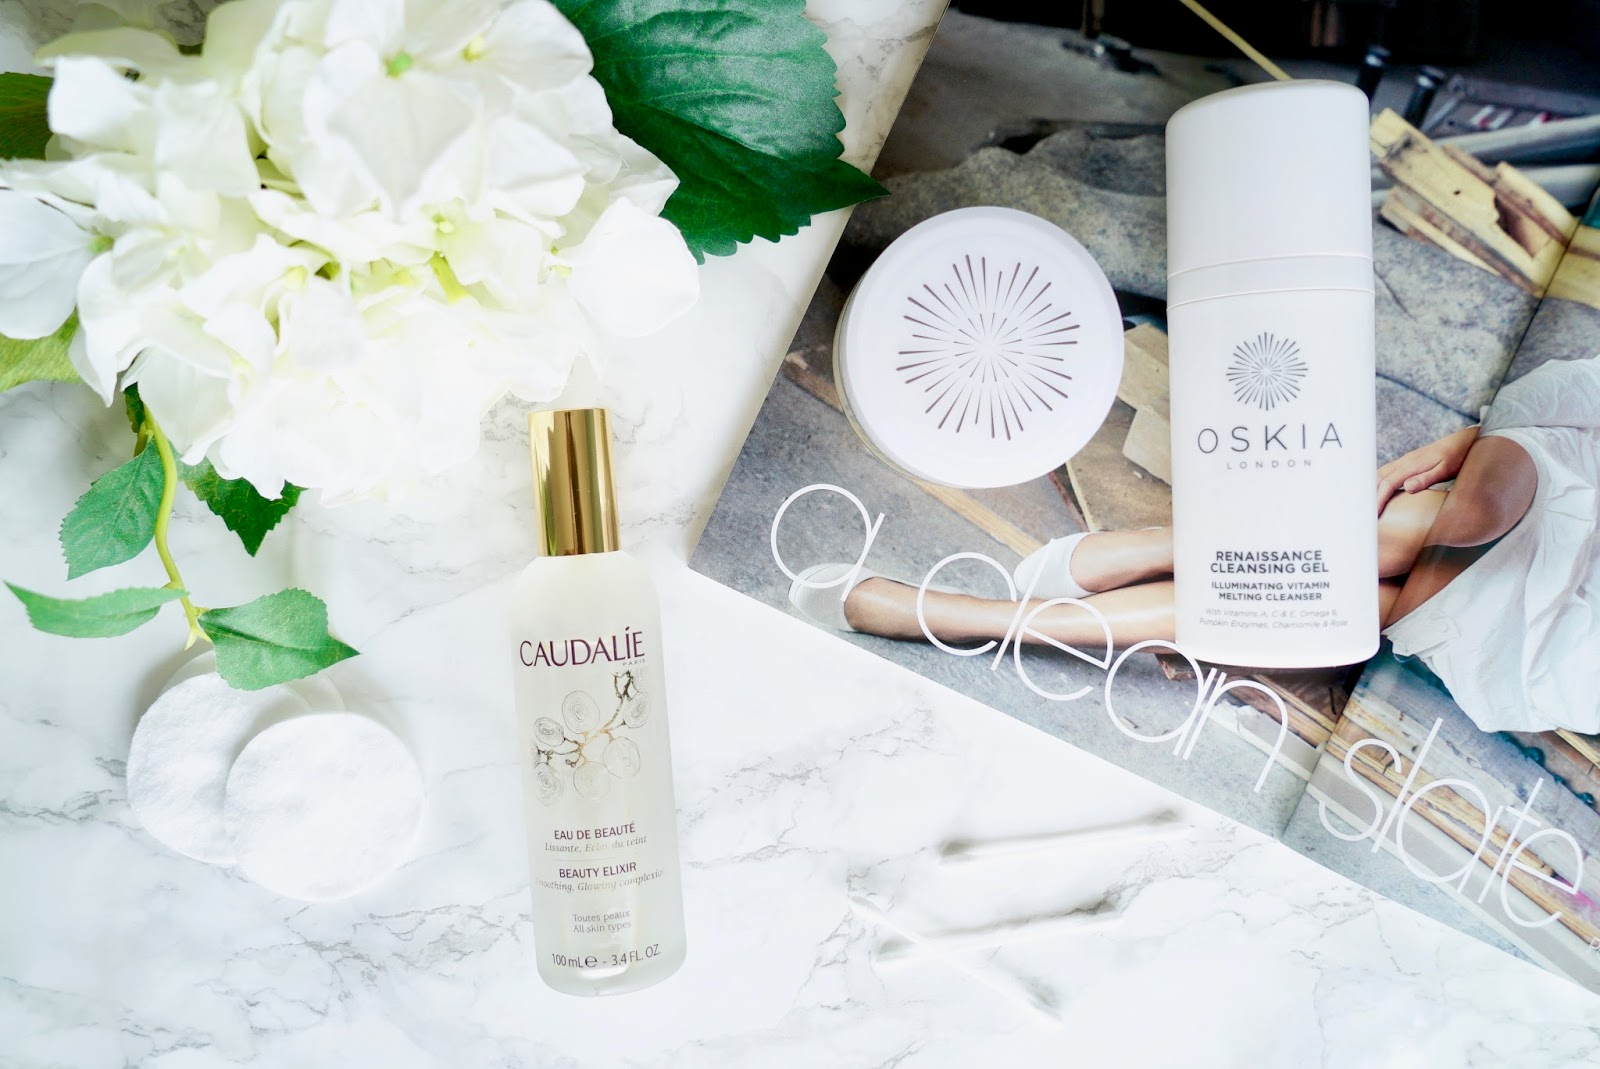 Caudalie Beauty Elixir, Oskia Renaissance Cleansing Gel, Oskia Micro Exfoliating balm review.